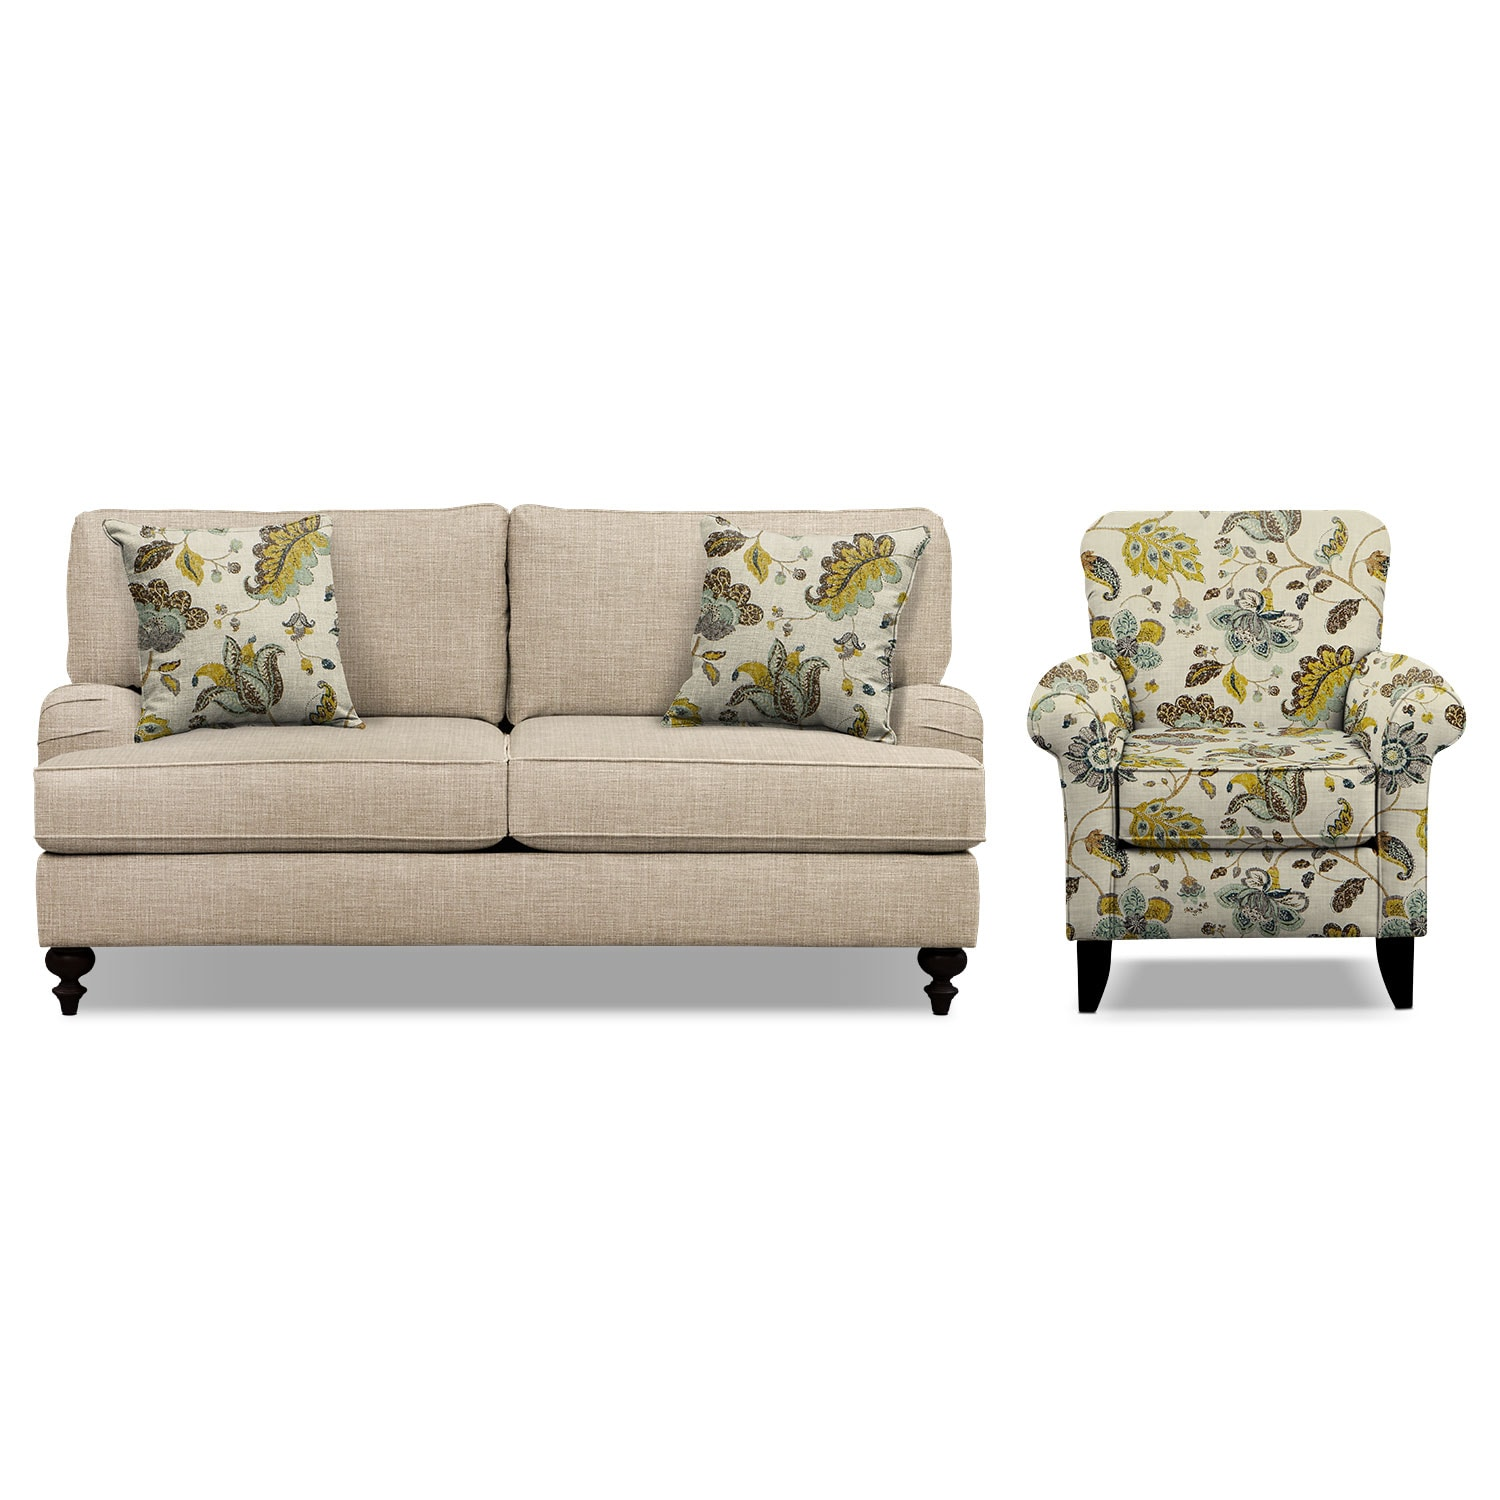 """Avery Taupe 74"""" Memory Foam Sleeper Sofa and Accent Chair Set"""